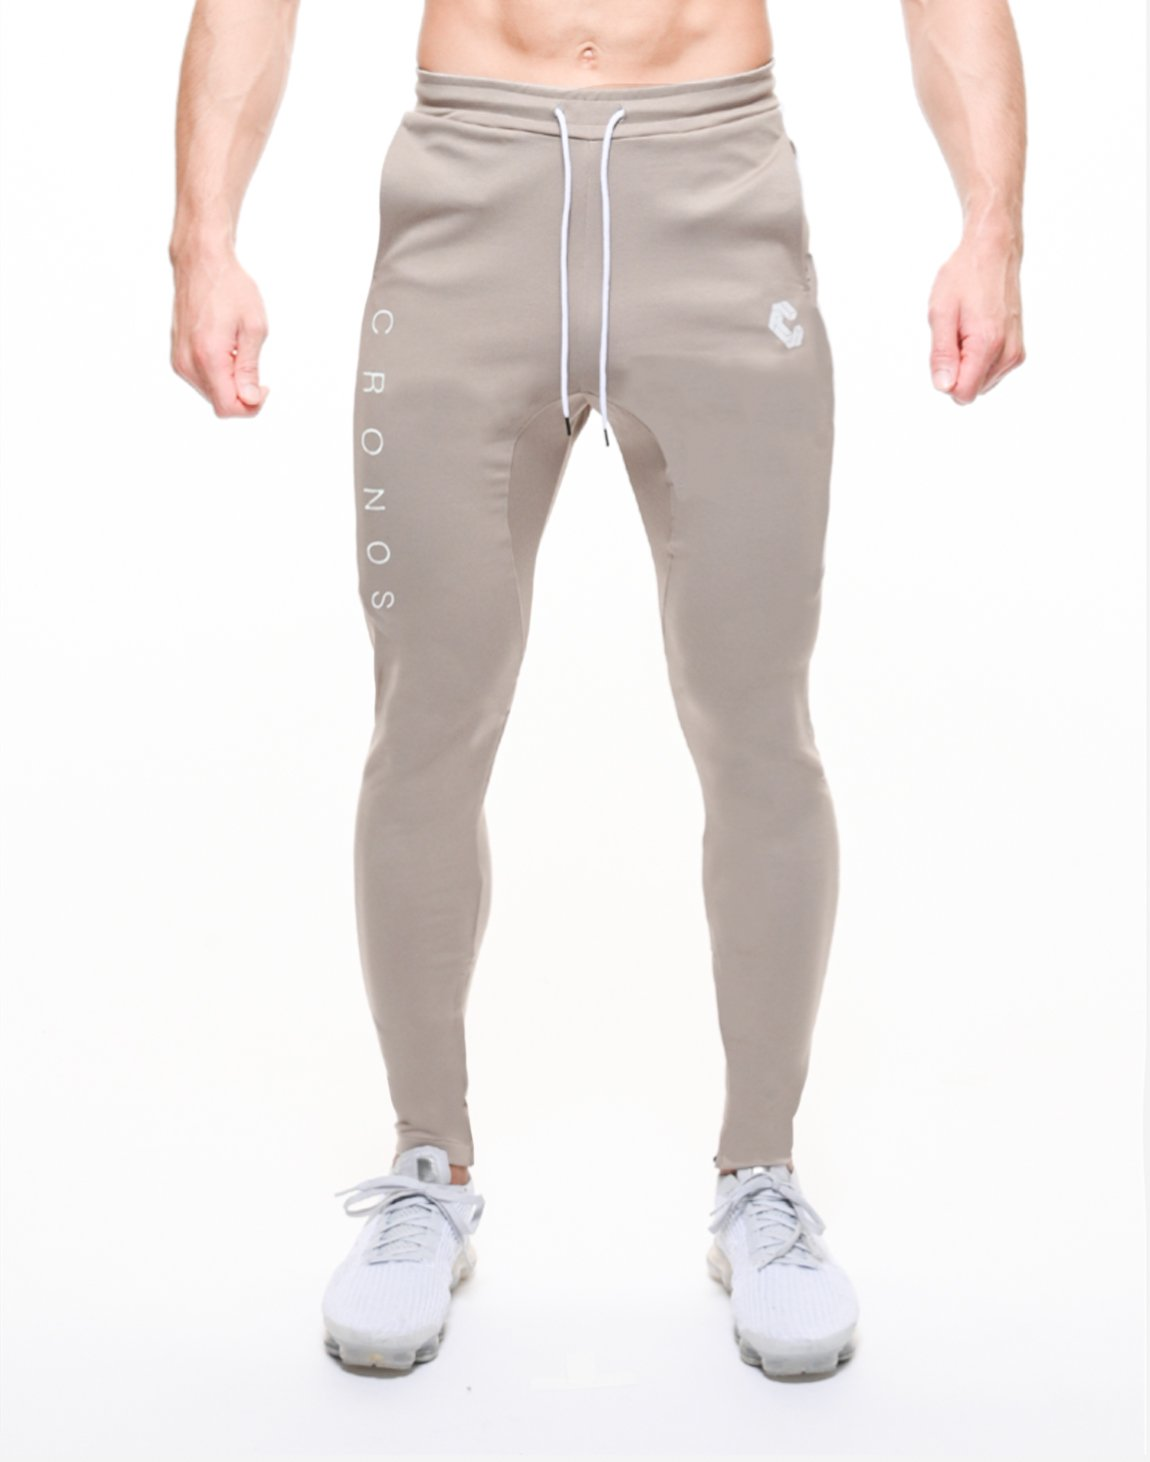 <img class='new_mark_img1' src='https://img.shop-pro.jp/img/new/icons55.gif' style='border:none;display:inline;margin:0px;padding:0px;width:auto;' />CRONOS SIDE FONT PANTS【BEIGE】